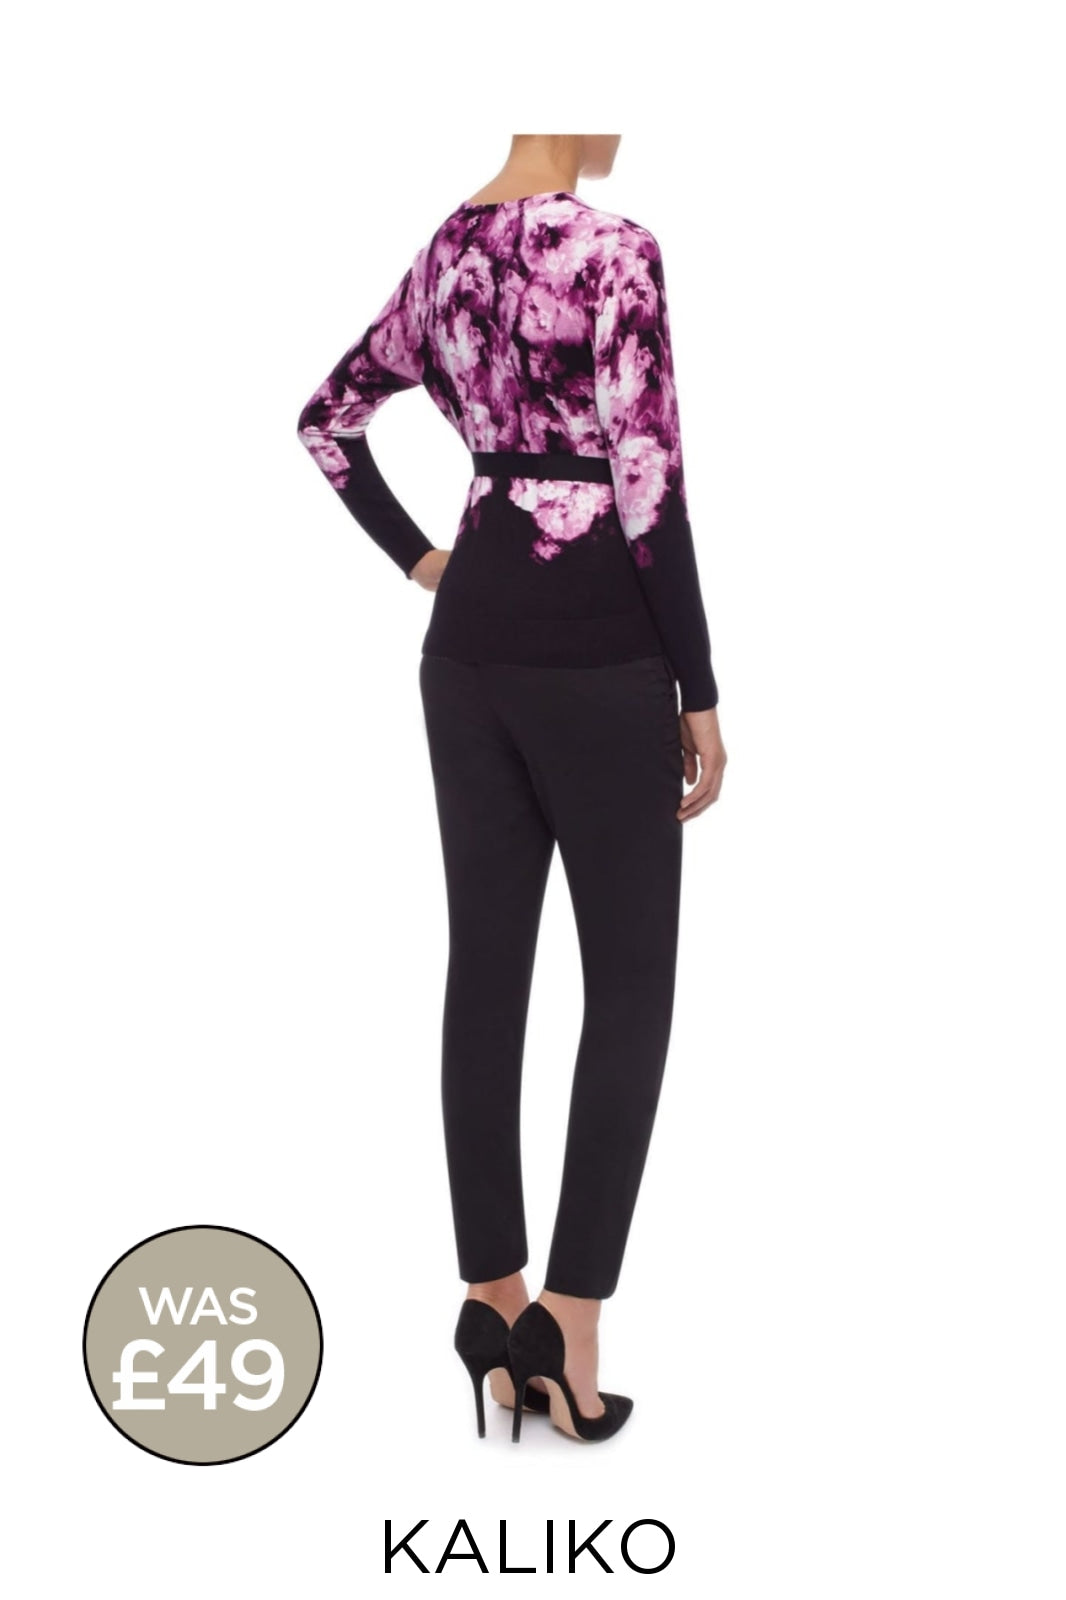 KALIKO KALIKO Black/Pink/Purple Floral Tie Waist Cardigan | Secret Label